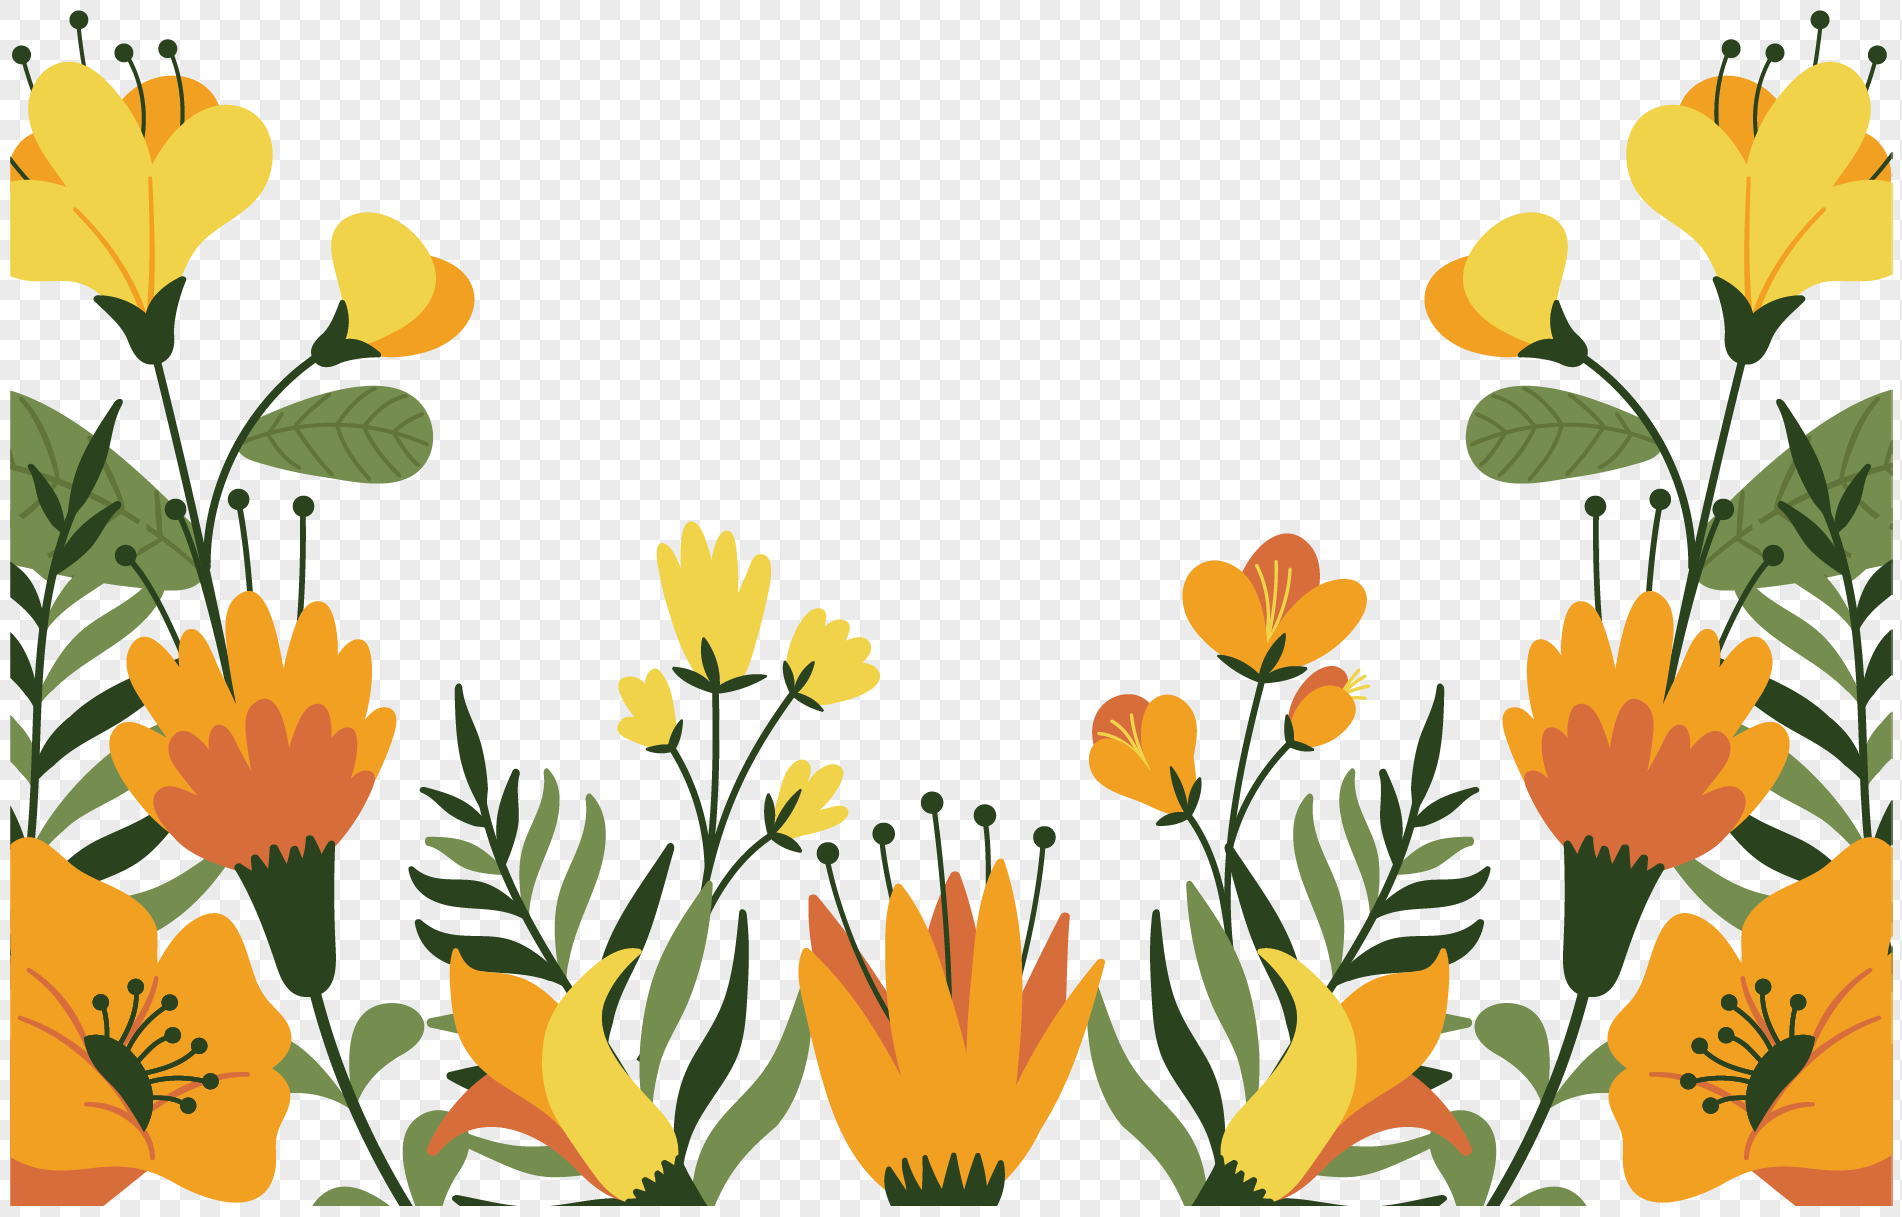 Beautiful yellow flowers png imagepicture free download beautiful yellow flowers izmirmasajfo